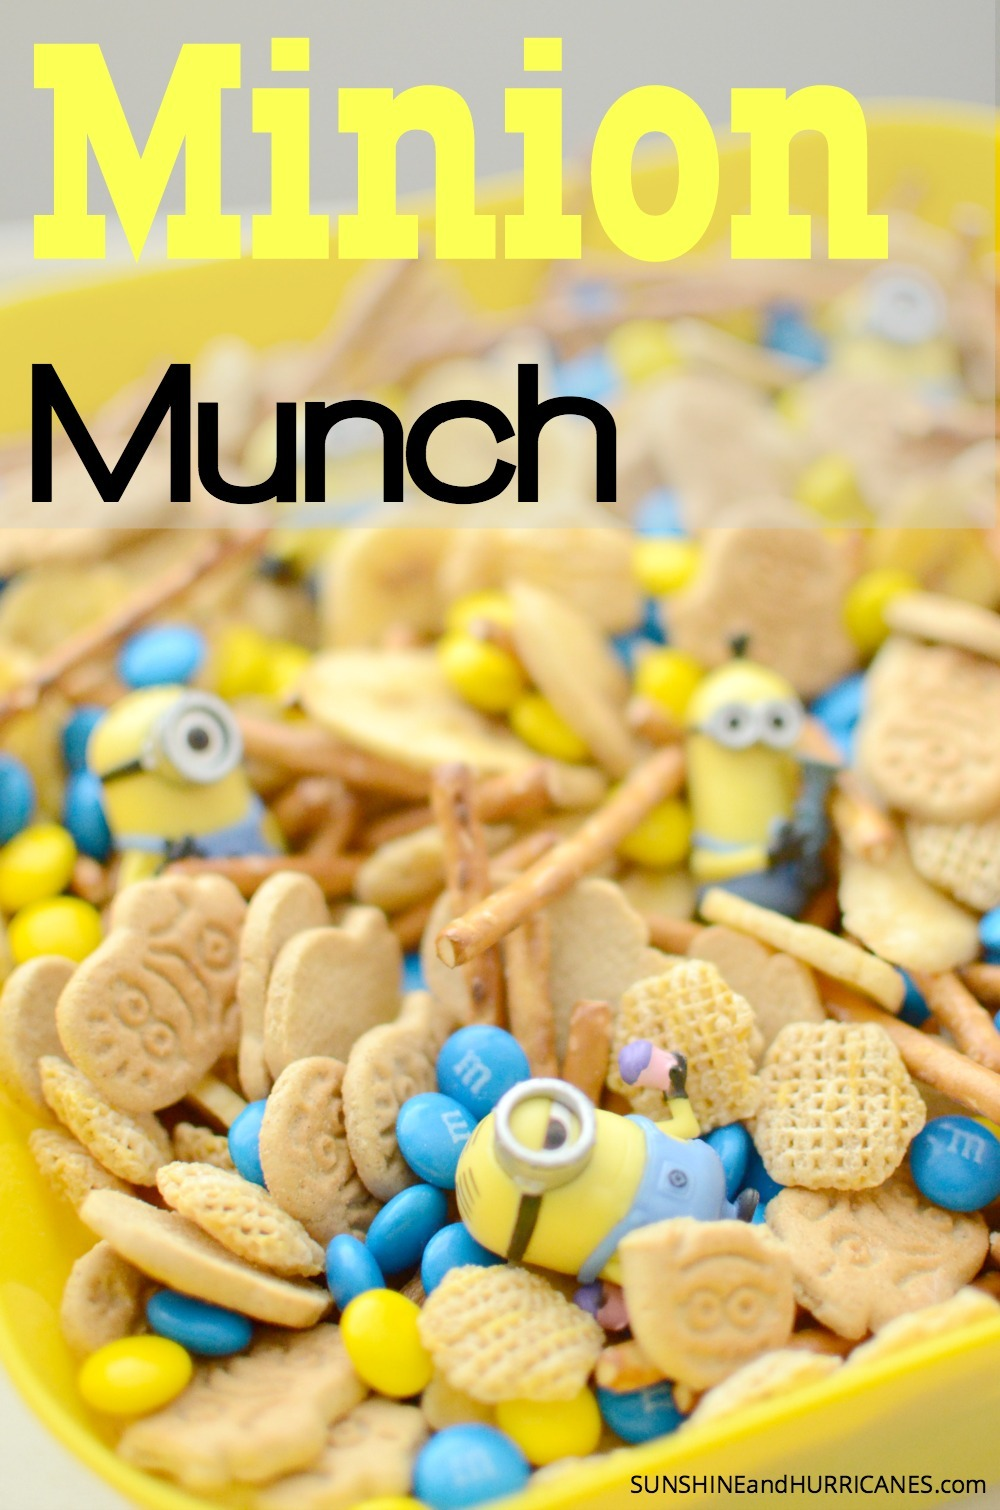 Anyone mad about Minions in your house? Whether you are throwing a minion themed Birthday party or just looking for a fun snack to feed the kiddos any old day, this Minion Munch Snack Mix is super easy to make and will absolutely guarantee tons of minion fun. Minion Munch. SunshineandHurricanes.com